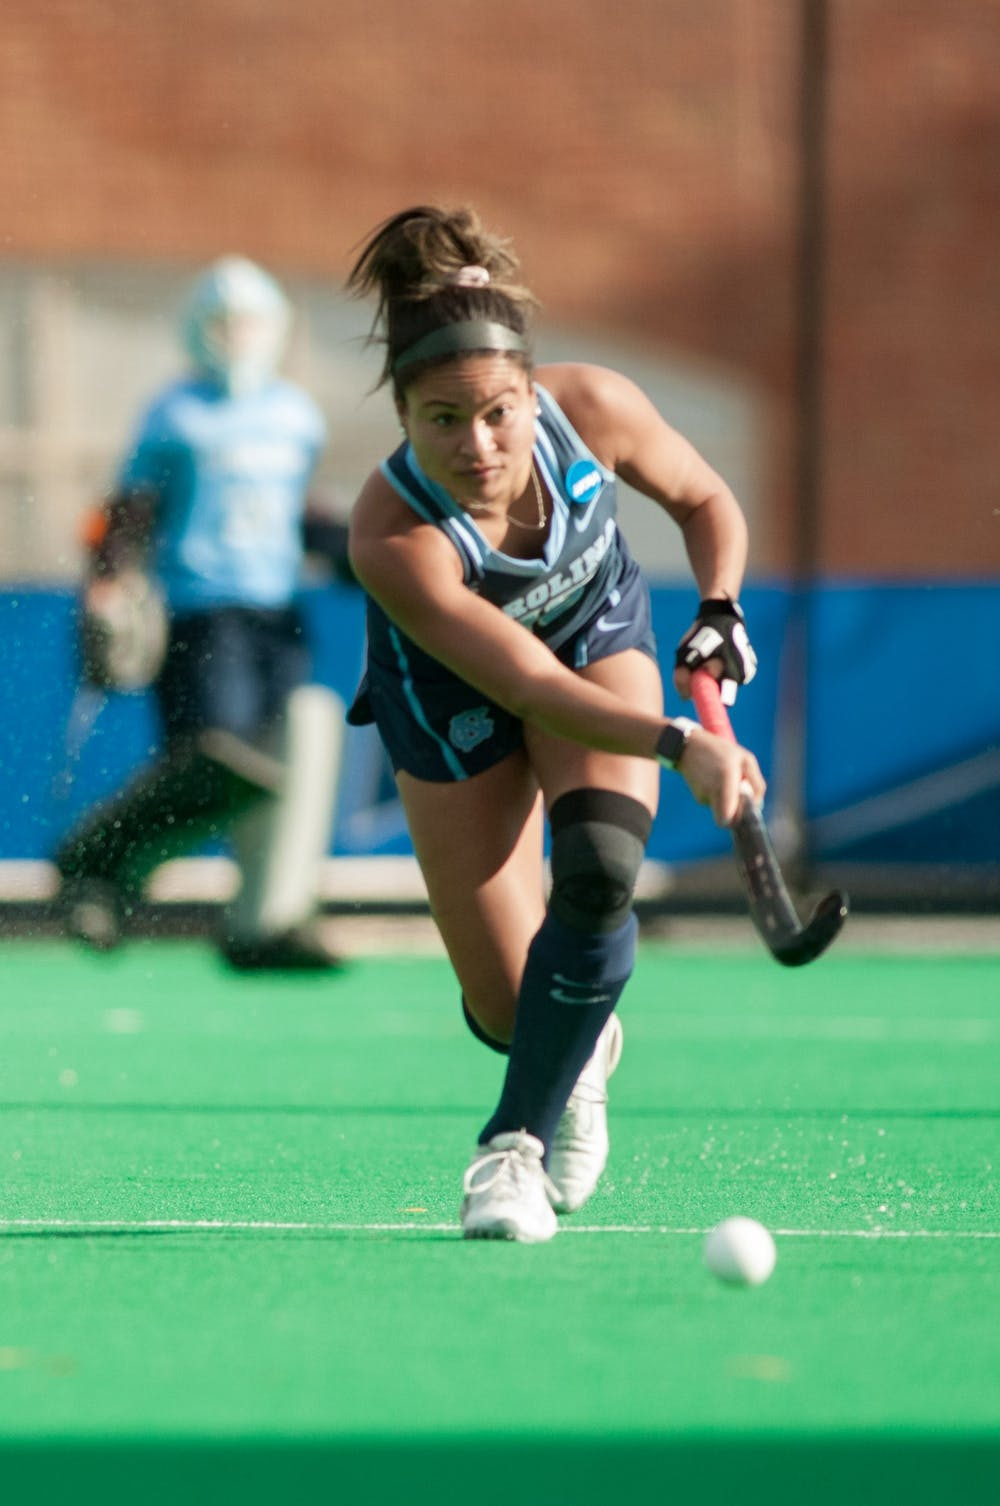 <p>Junior back Courtnie Williamson (25) passes the ball during the NCAA Championship Game against Princeton University at Kentner Stadium on Sunday, Nov. 24, 2019. UNC won 6-1, marking their 8th national championship.</p>